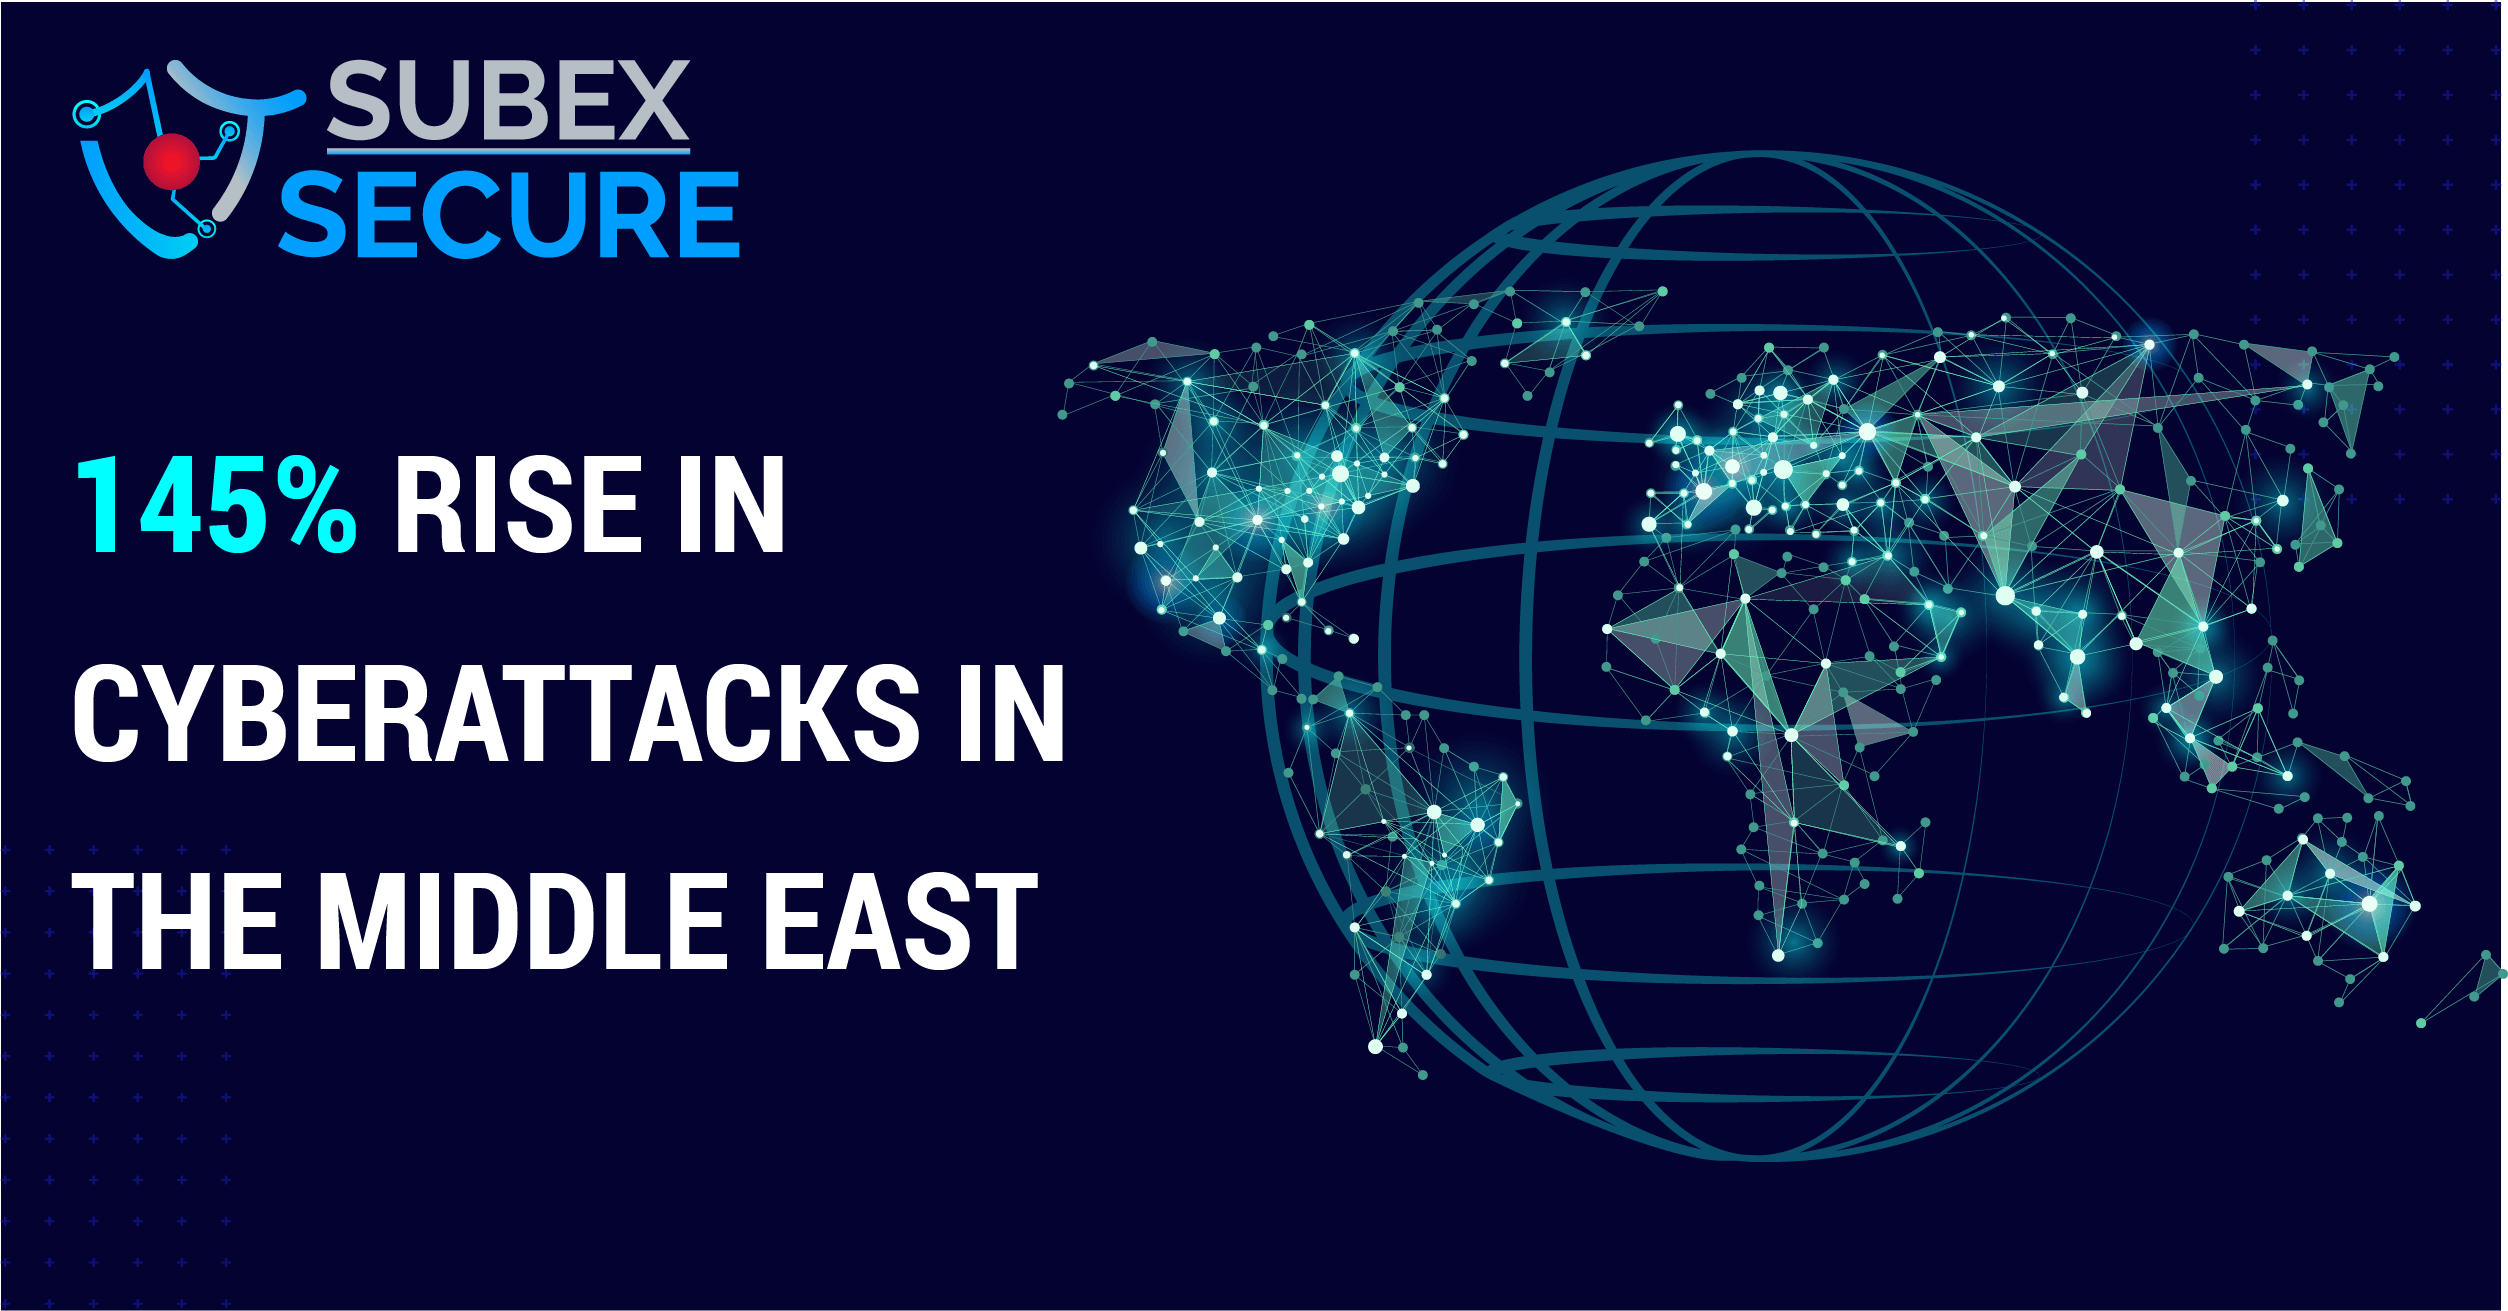 145% increase in cyberattacks targeted on the middle east